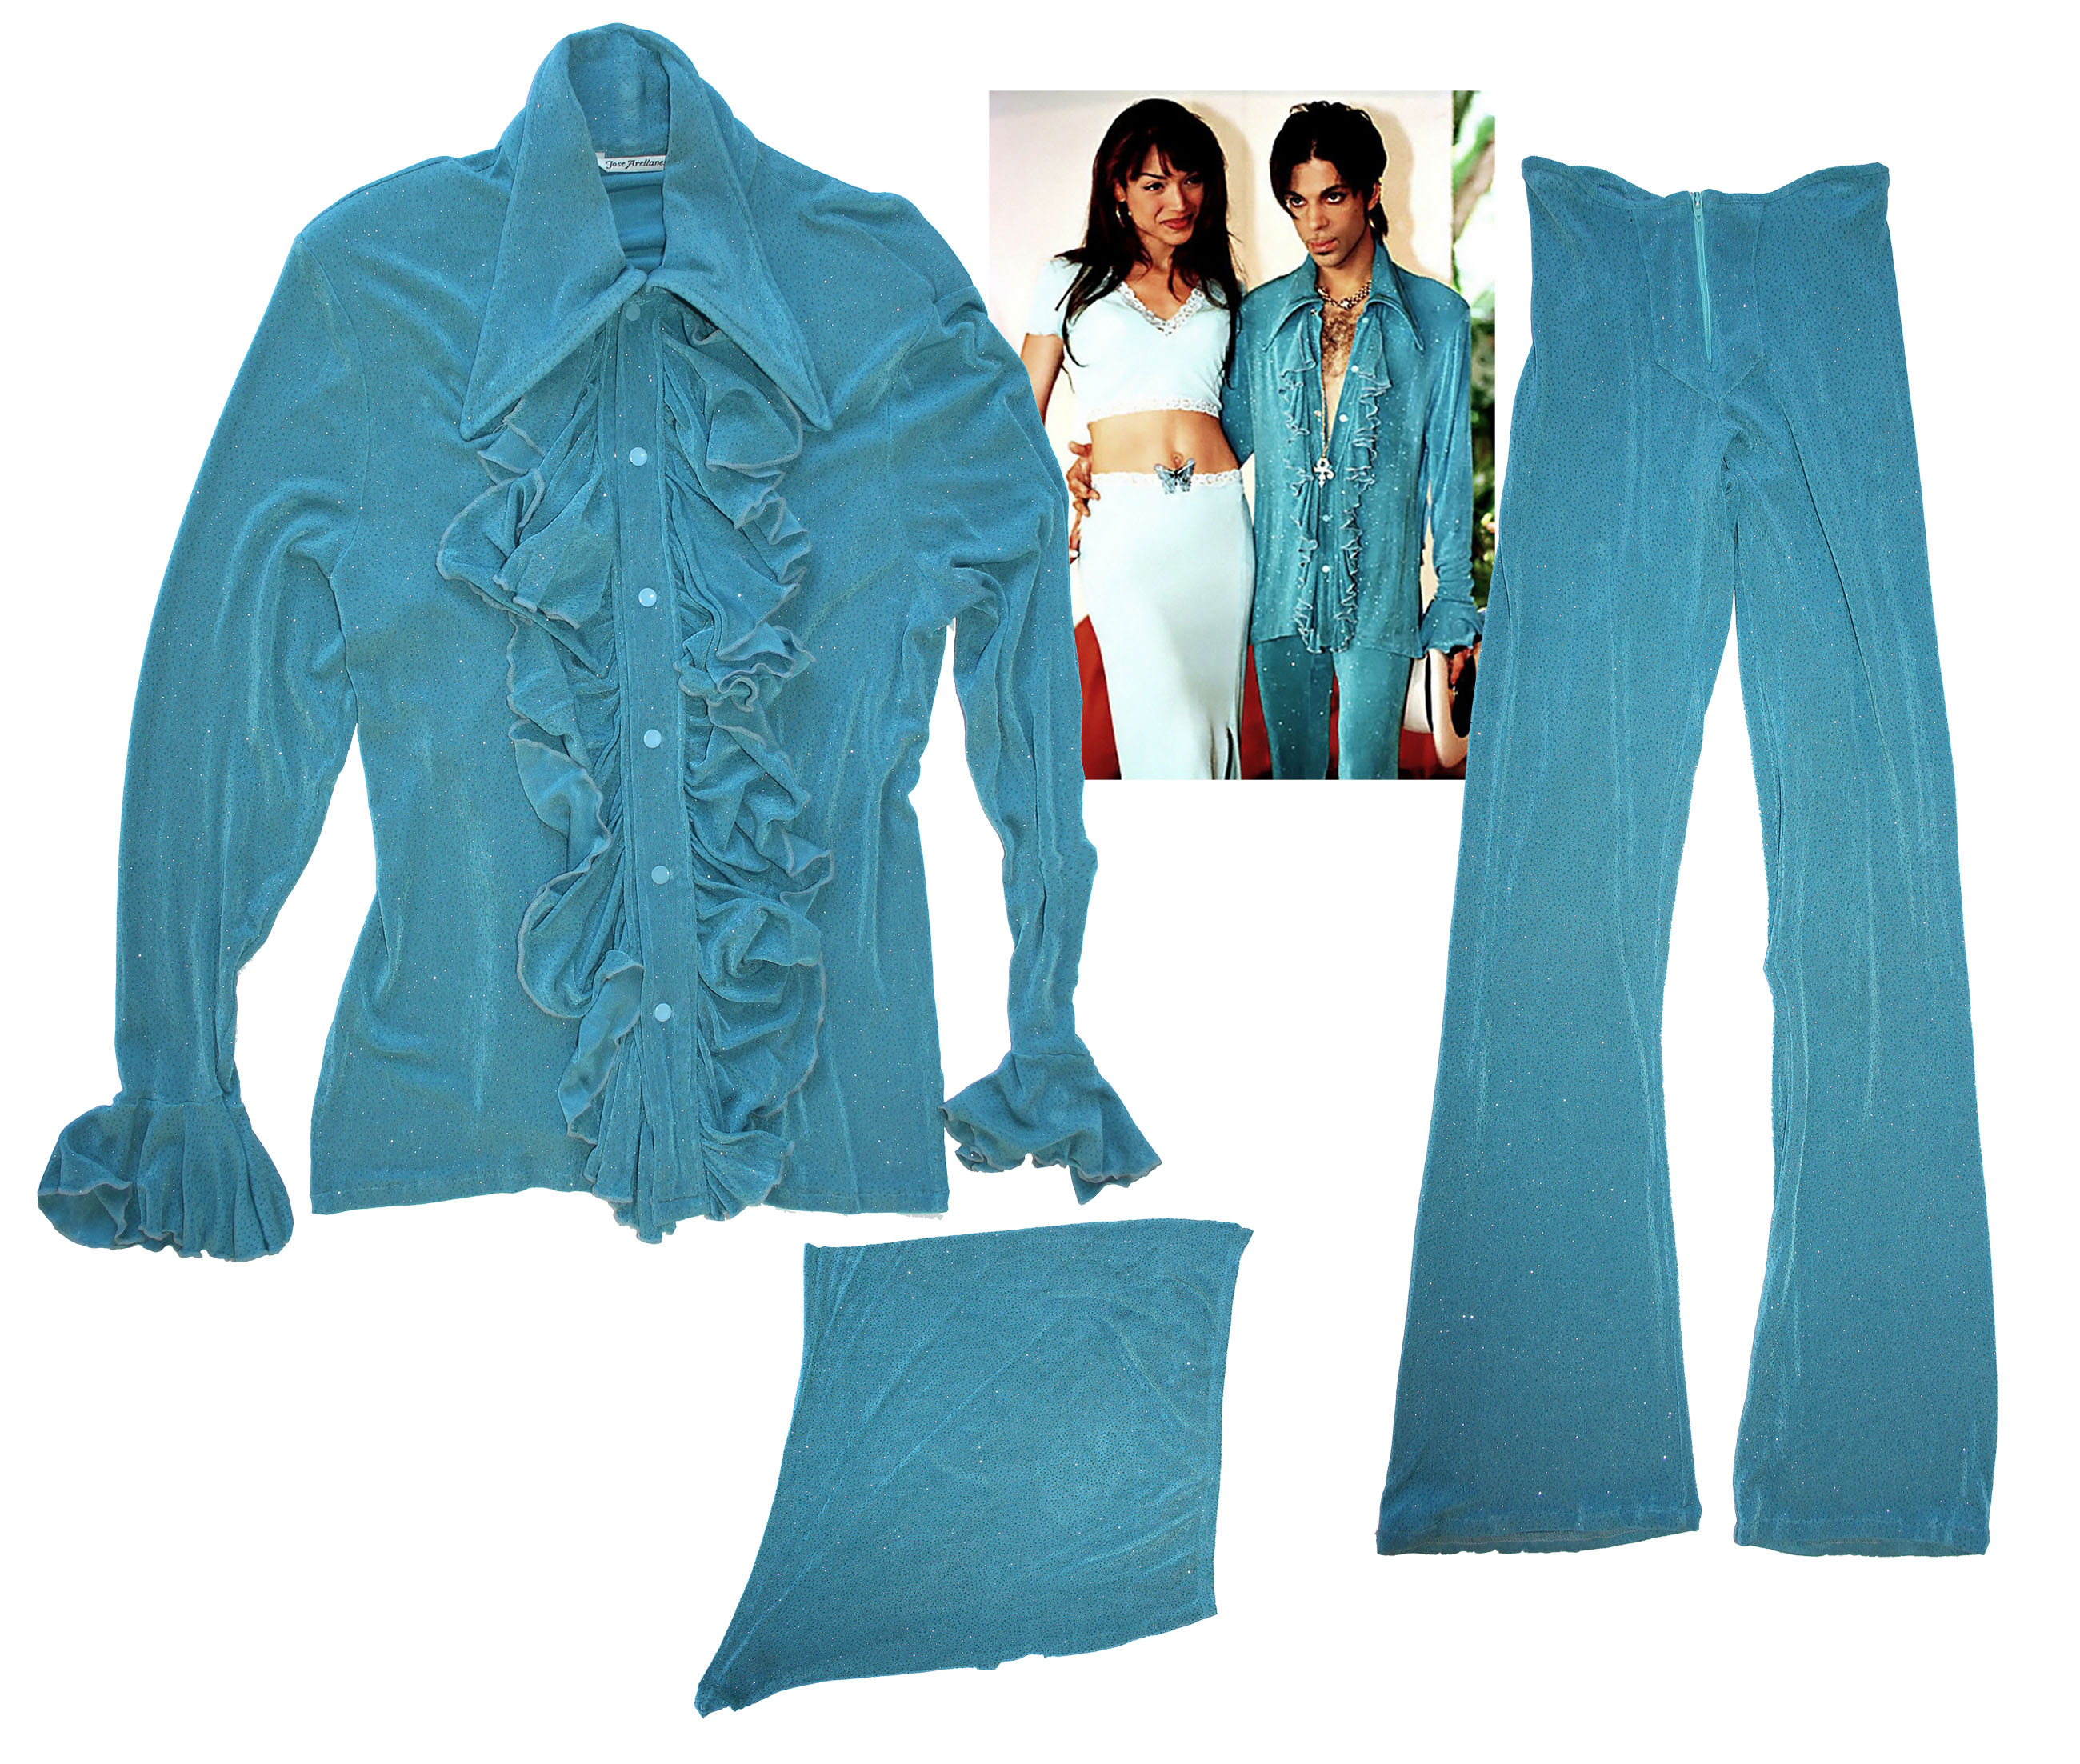 Prince stage worn costume Prince Worn Turquoise 3-Piece Outfit -- His Signature Outfit in His Favorite Style -- Worn During His Press Conference in 1998 in Marbella, Spain